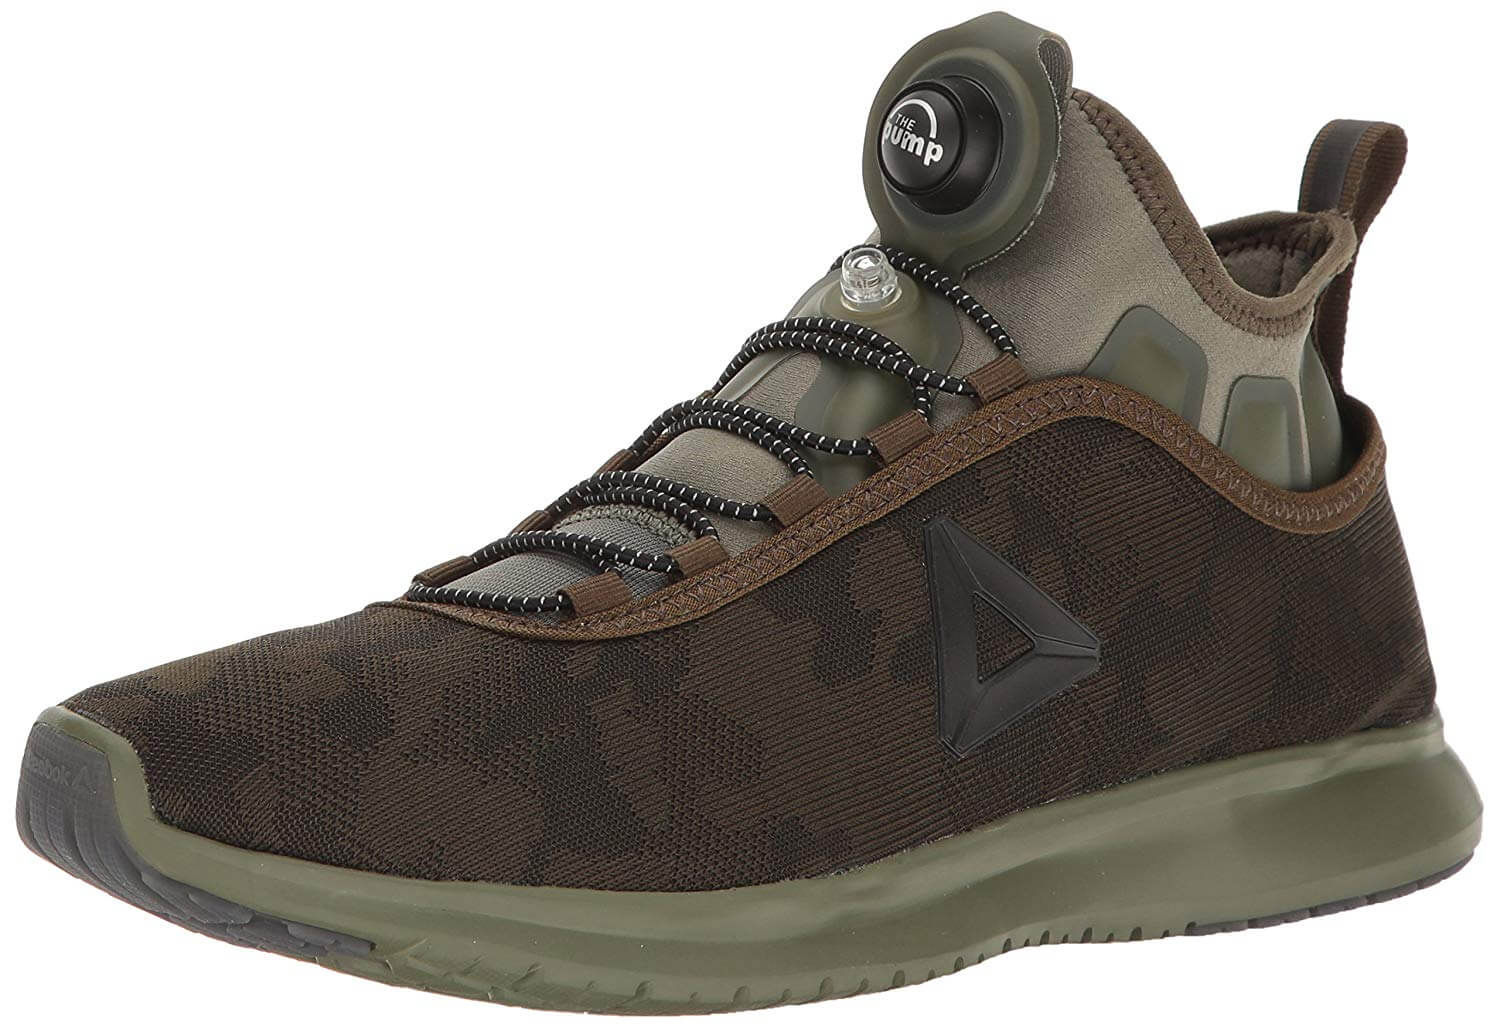 f780d5309 Reebok Pump Plus Camo Review - Buy or Not in May 2019